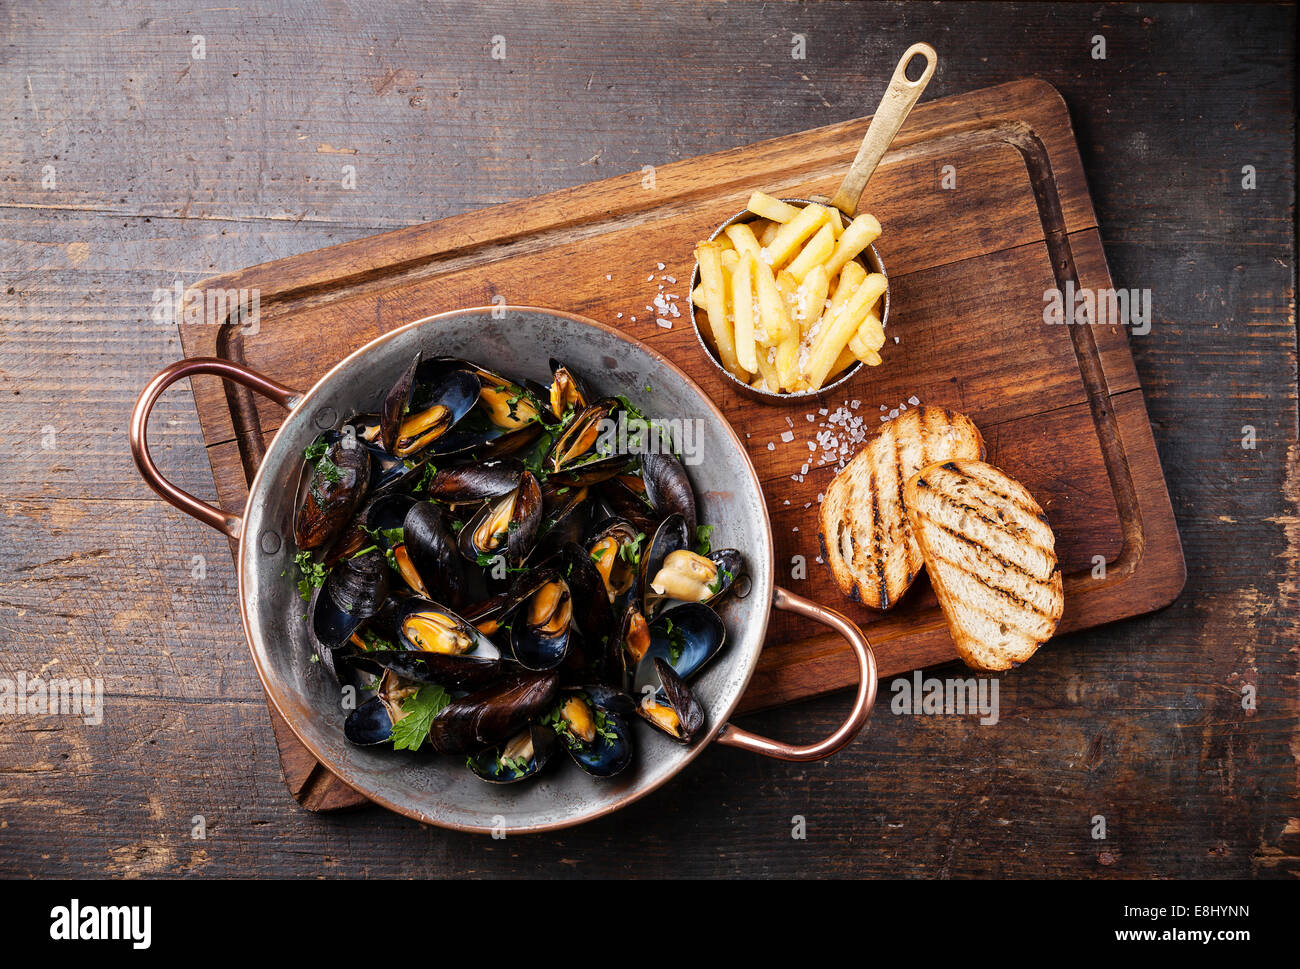 Mussels in copper cooking dish and french fries on dark wooden background - Stock Image